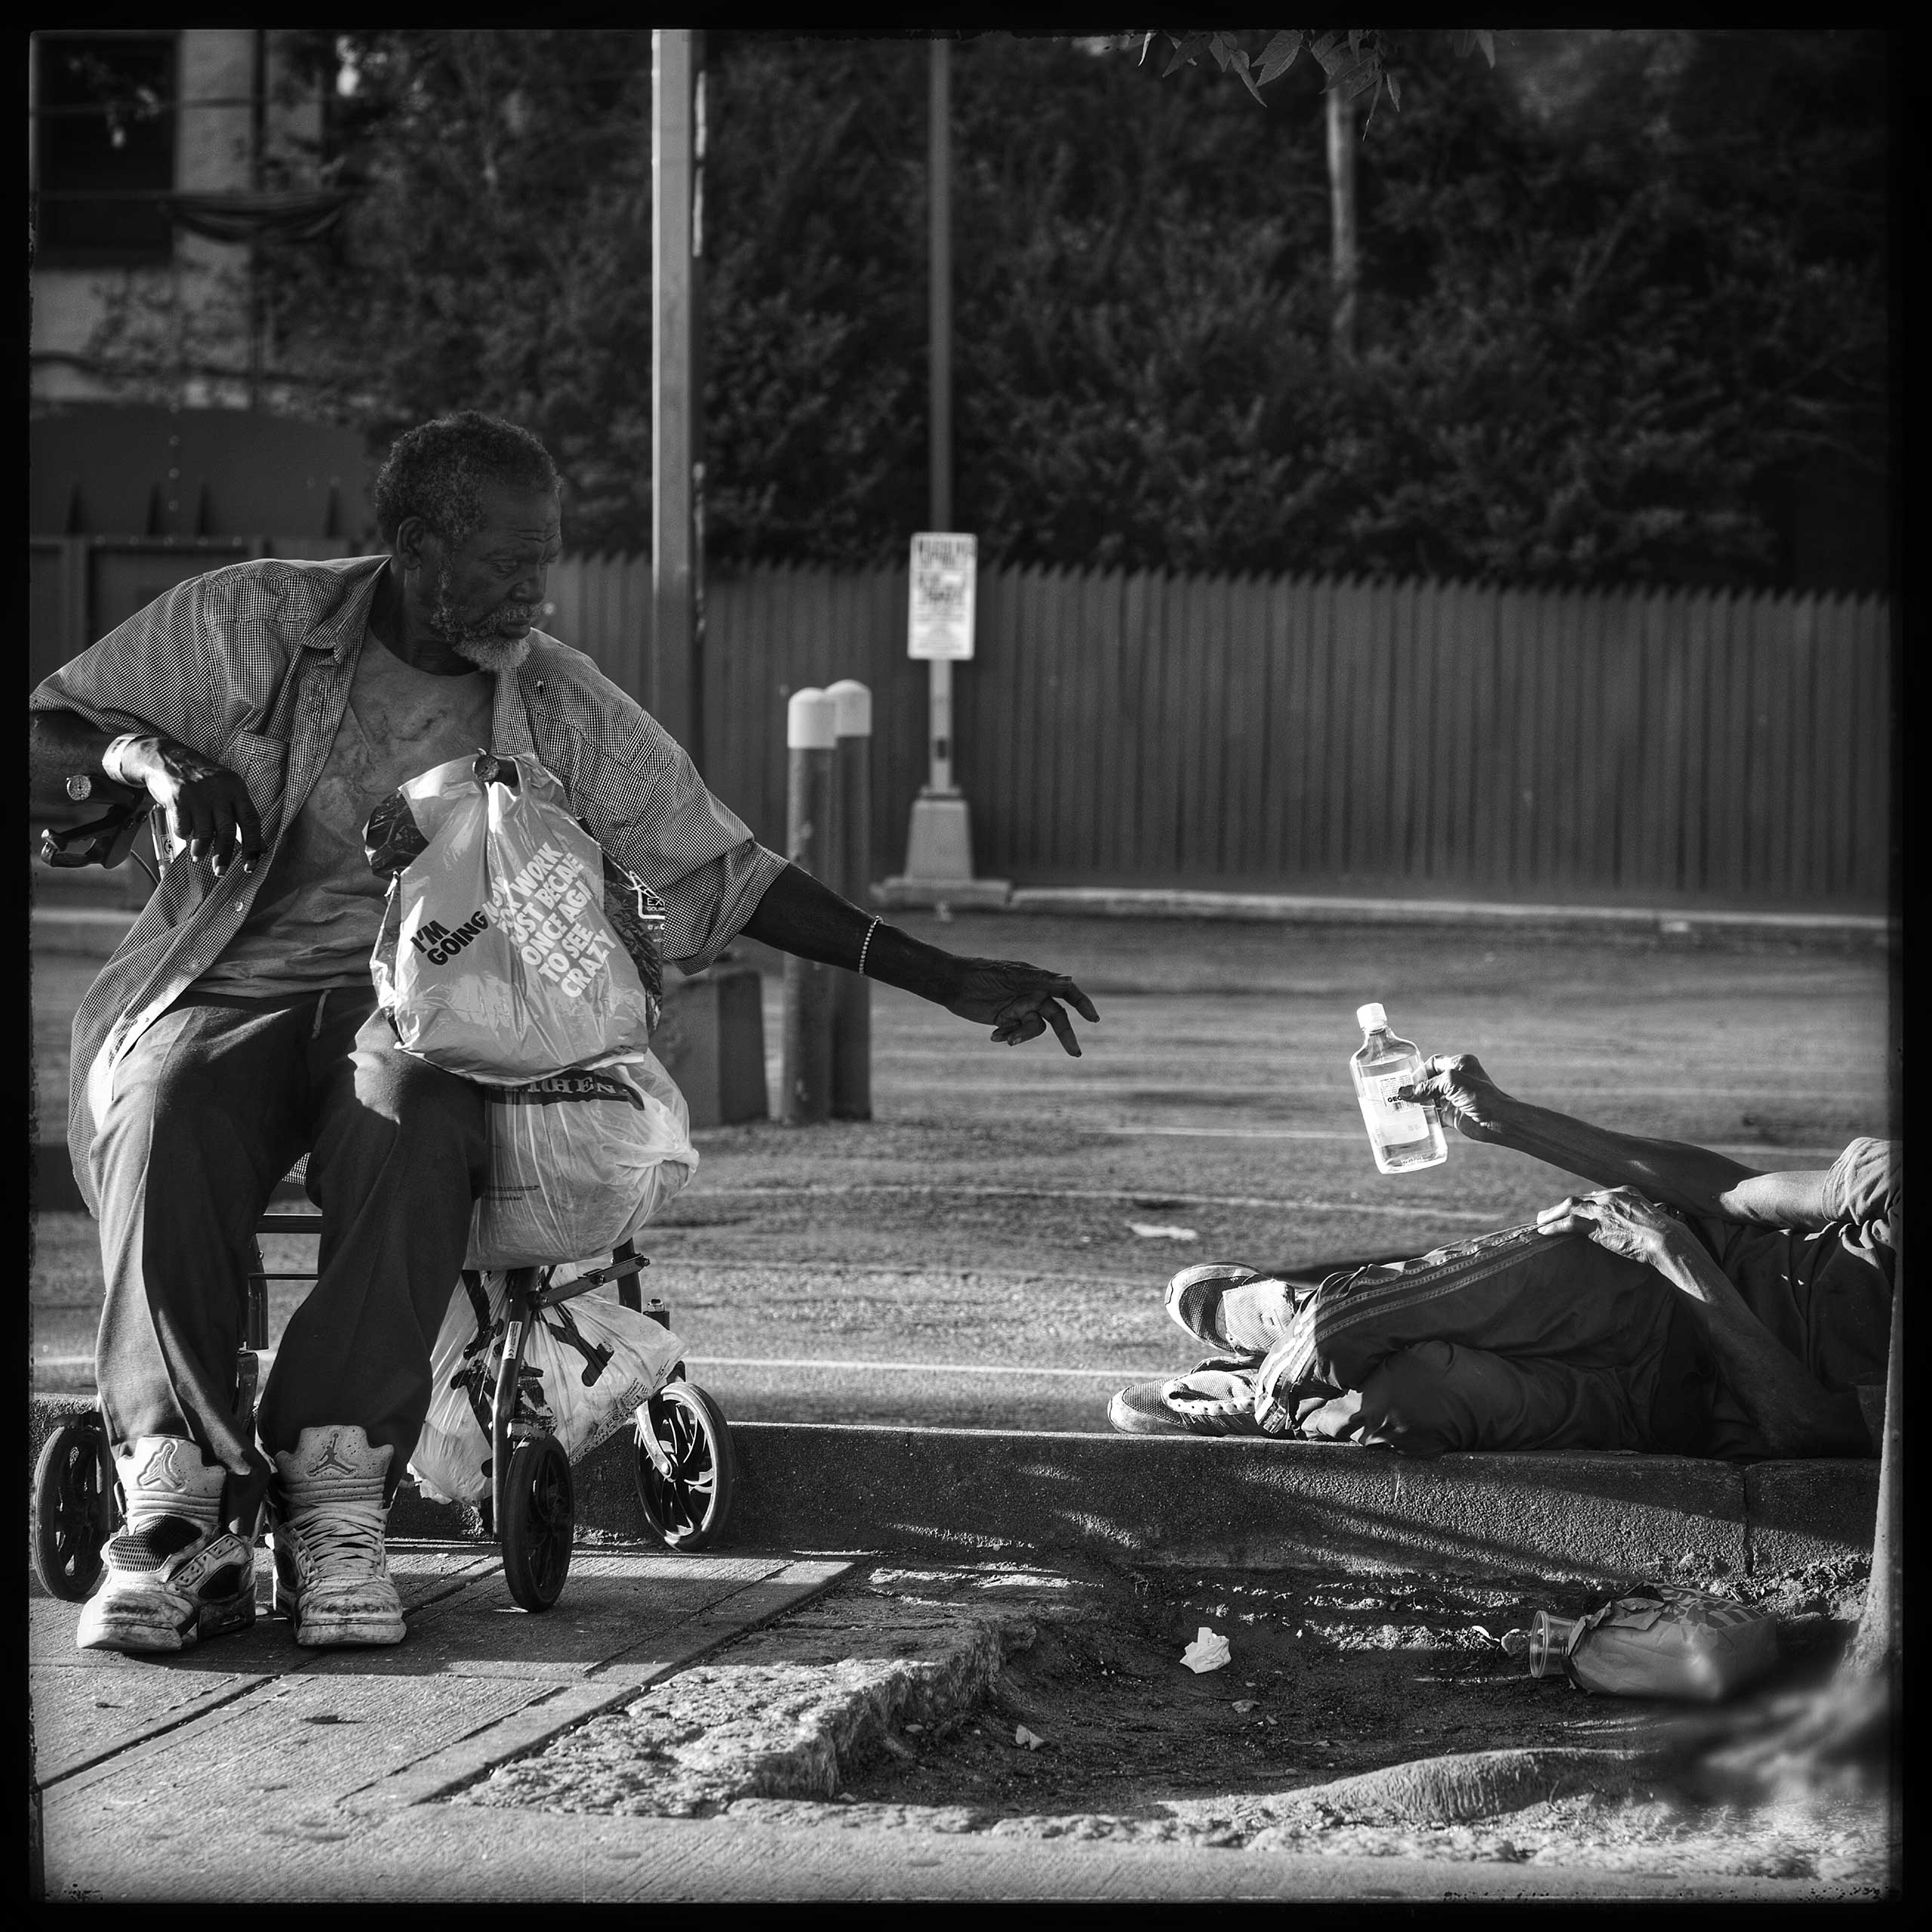 Sharing a drink with a friend. Two elderly gentlemen pass the time by drinking and sharing moments together on Fulton Street in Brooklyn.